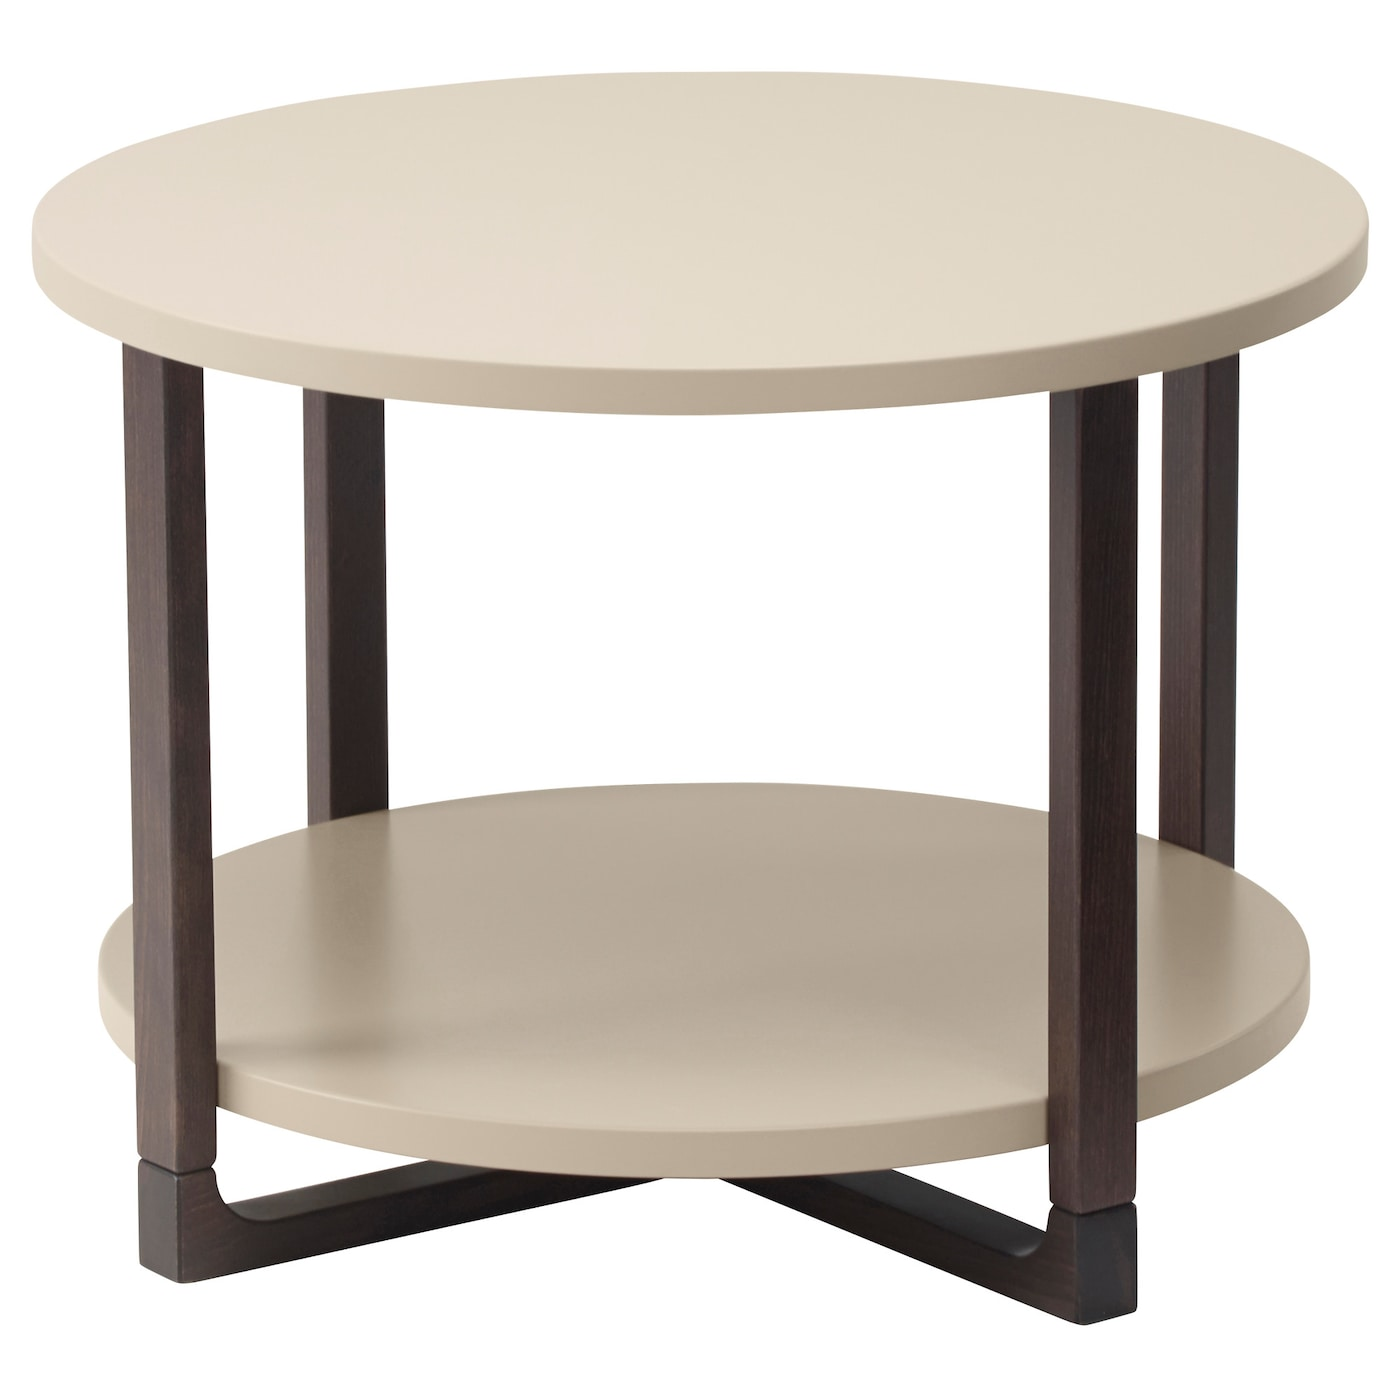 Rissna side table beige 60 cm ikea - Table largeur 60 cm ...